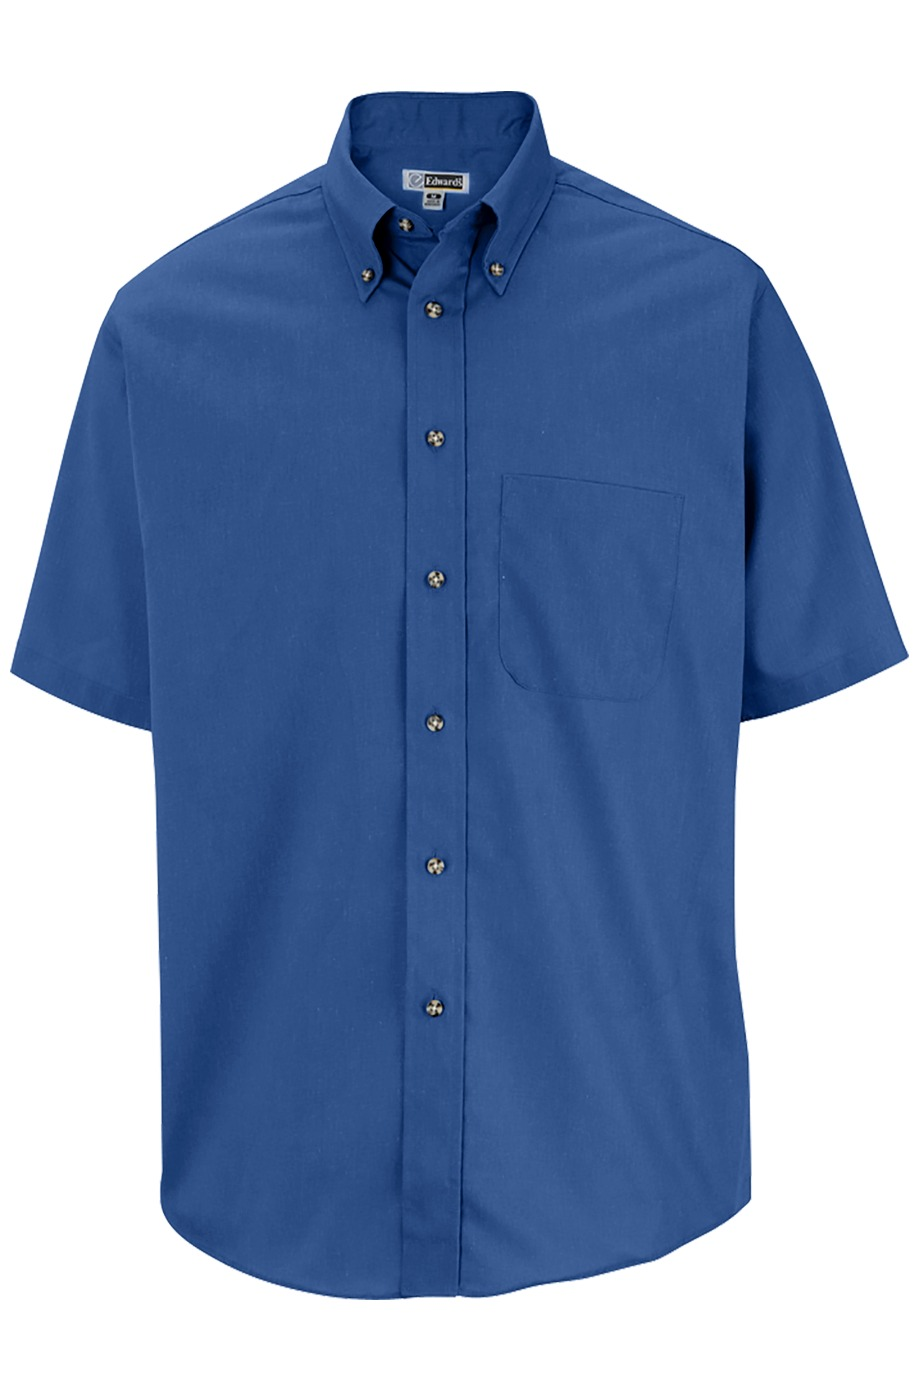 Edwards Garment 1230 - Men's Easy Care Short Sleeve ...